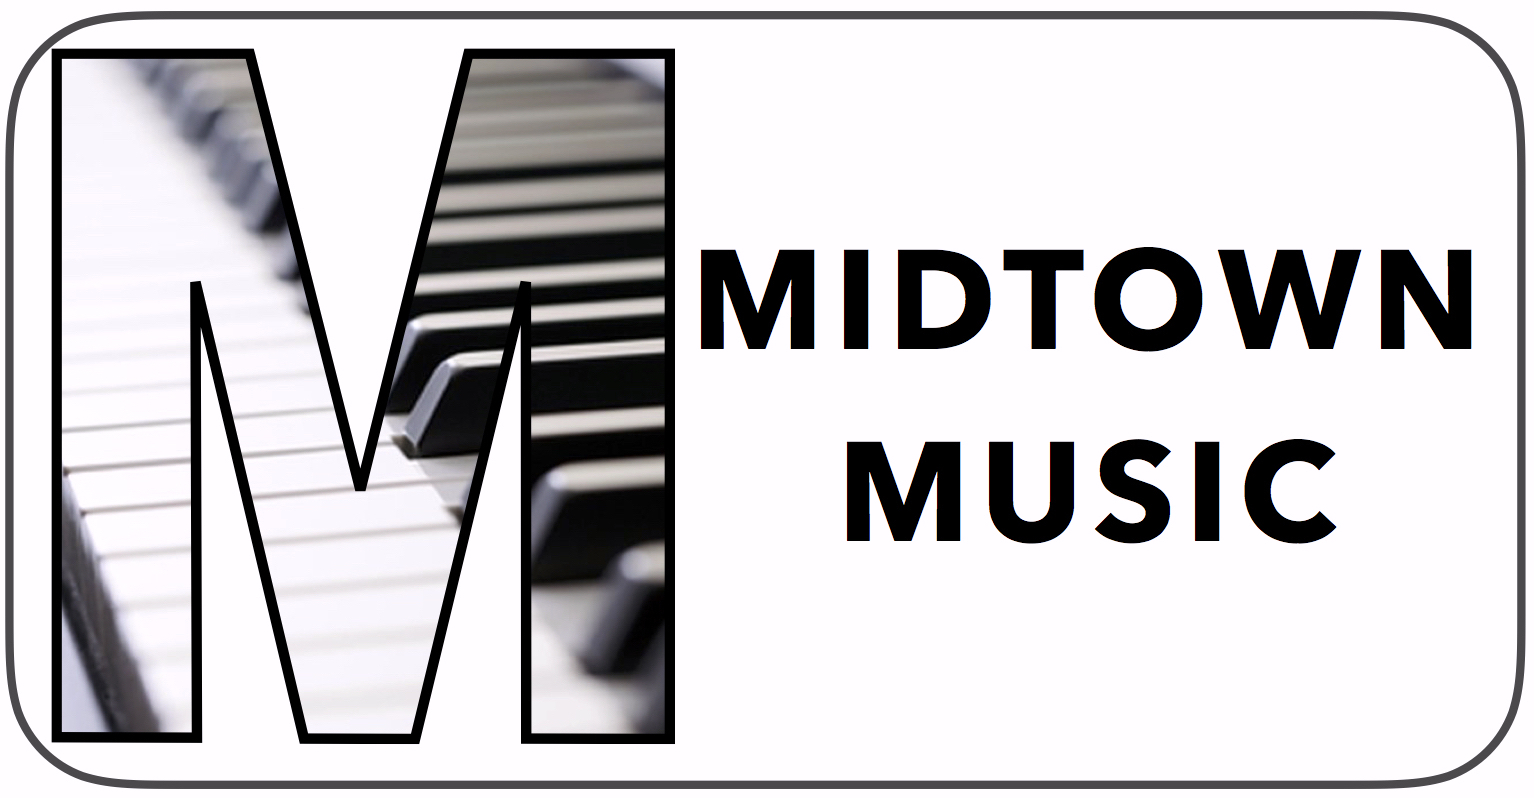 Midtown Music Kingston